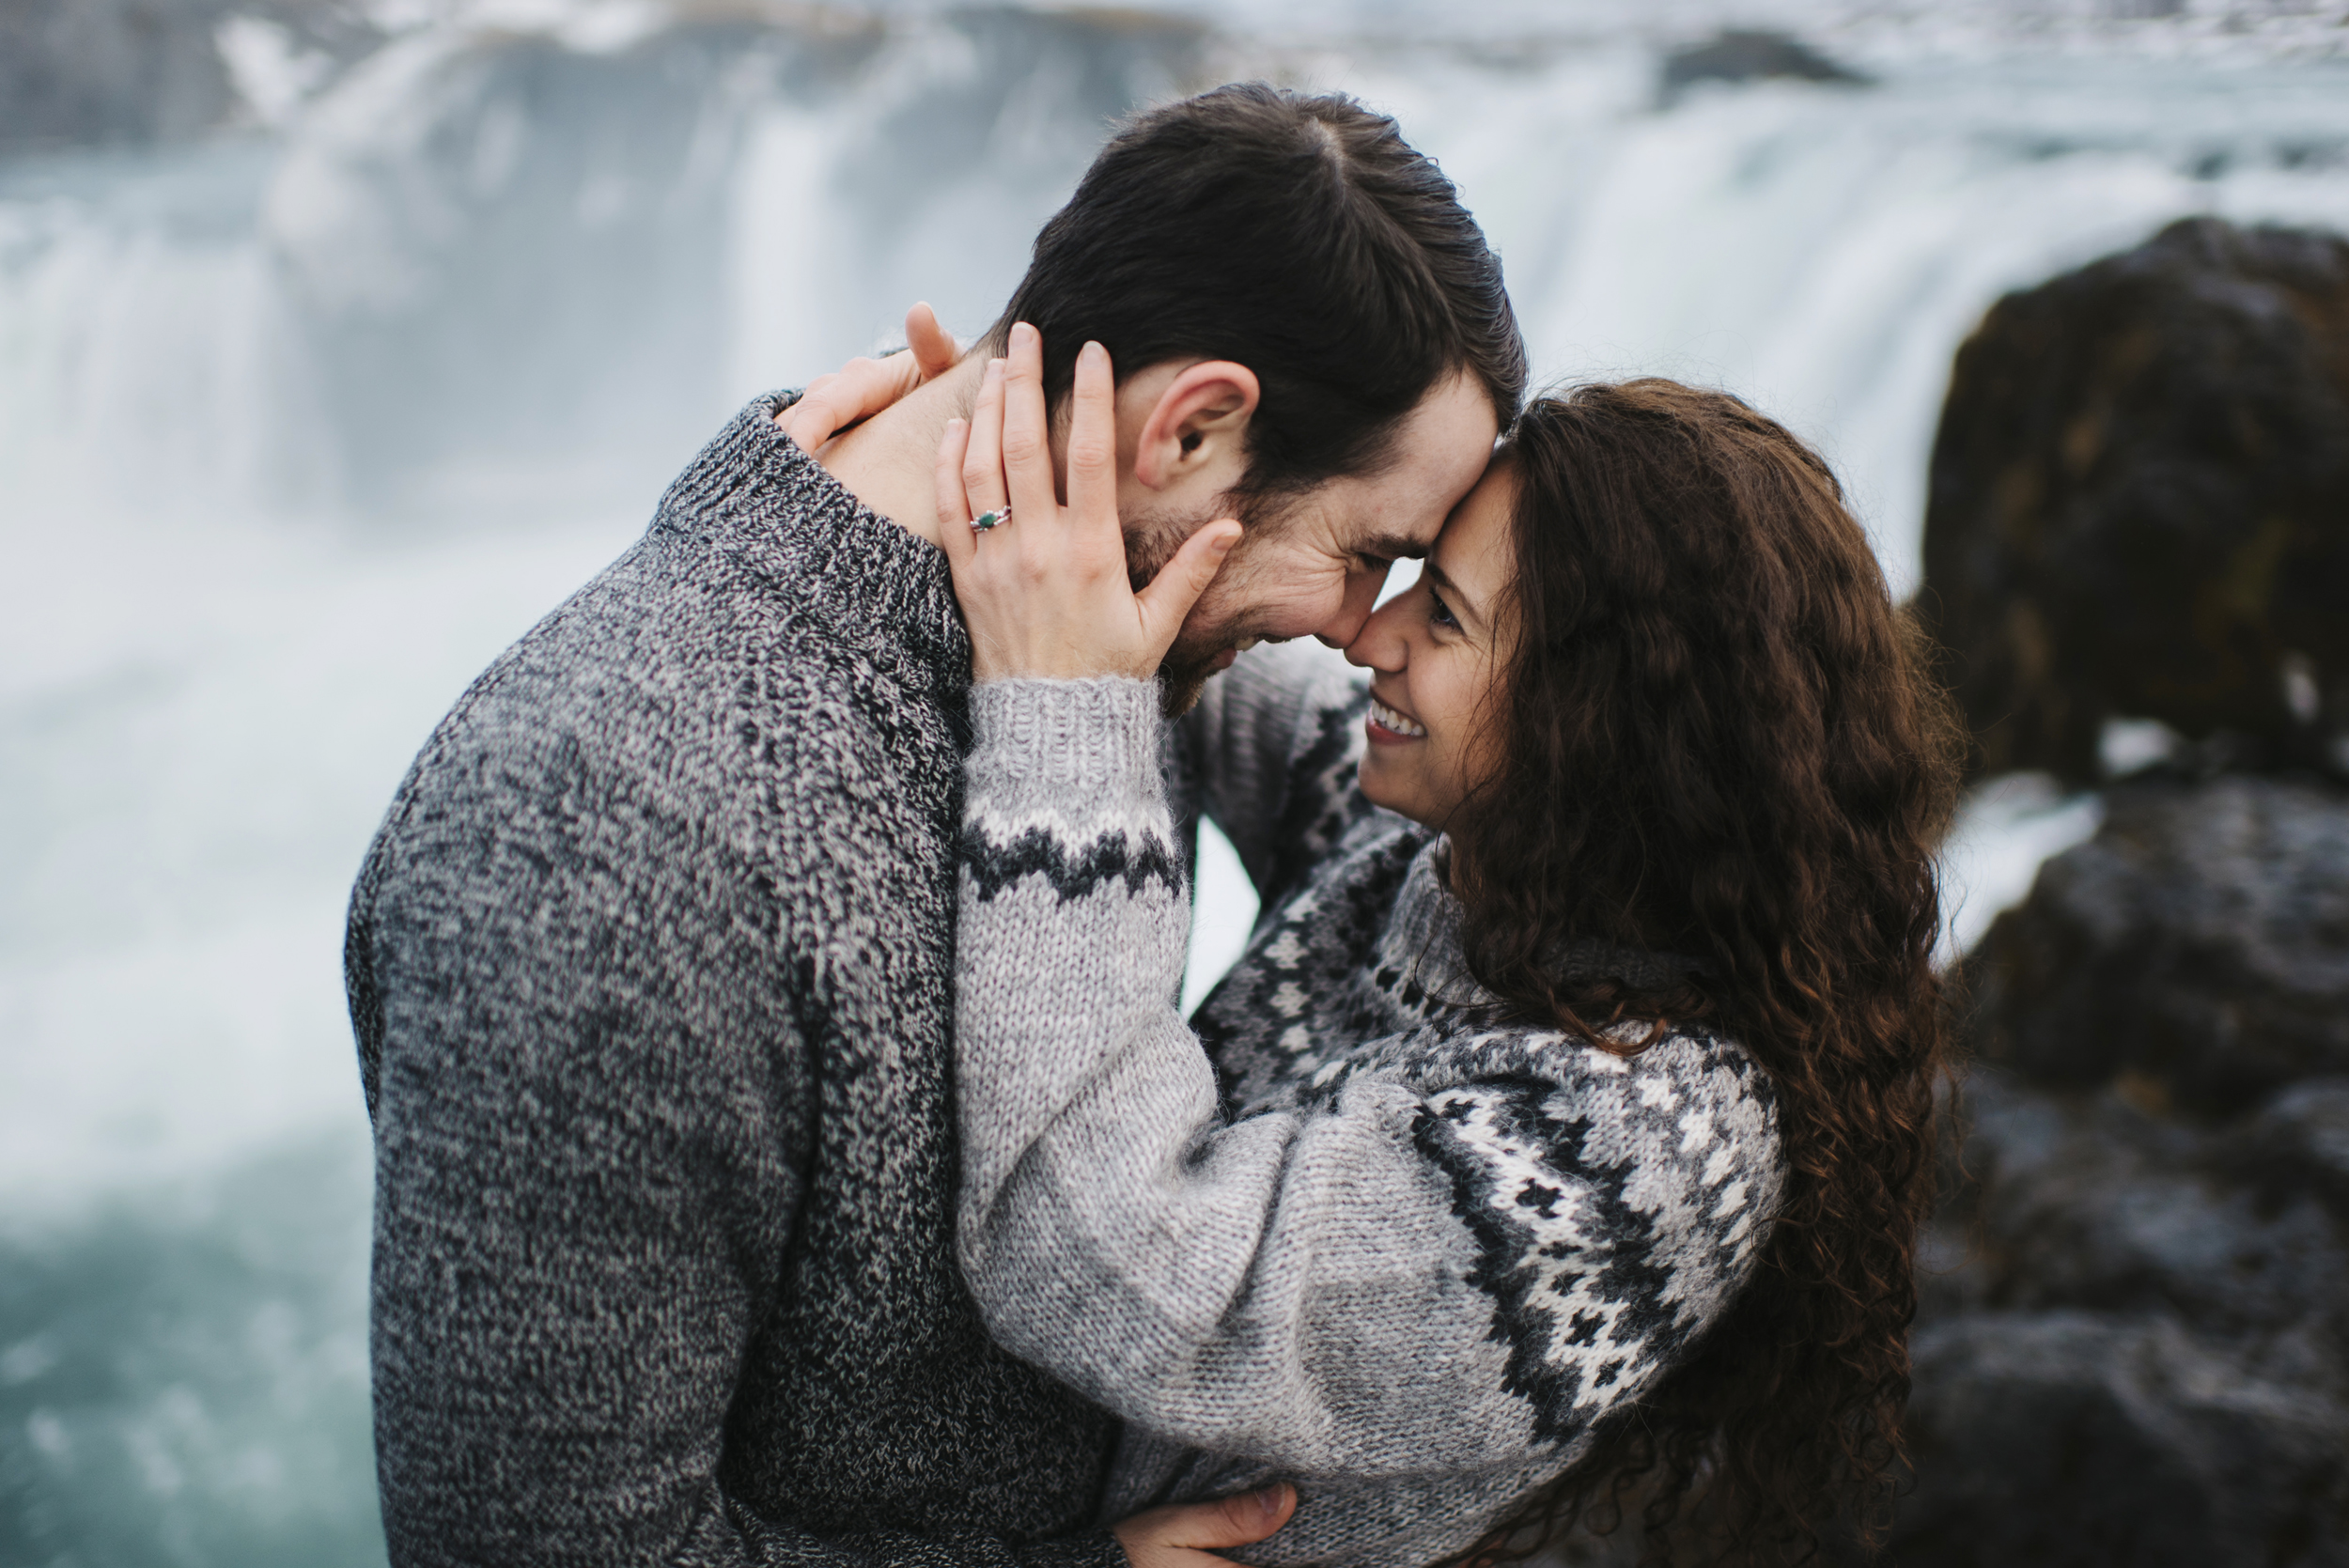 Iceland Adventure Engagement Photographer235.JPG